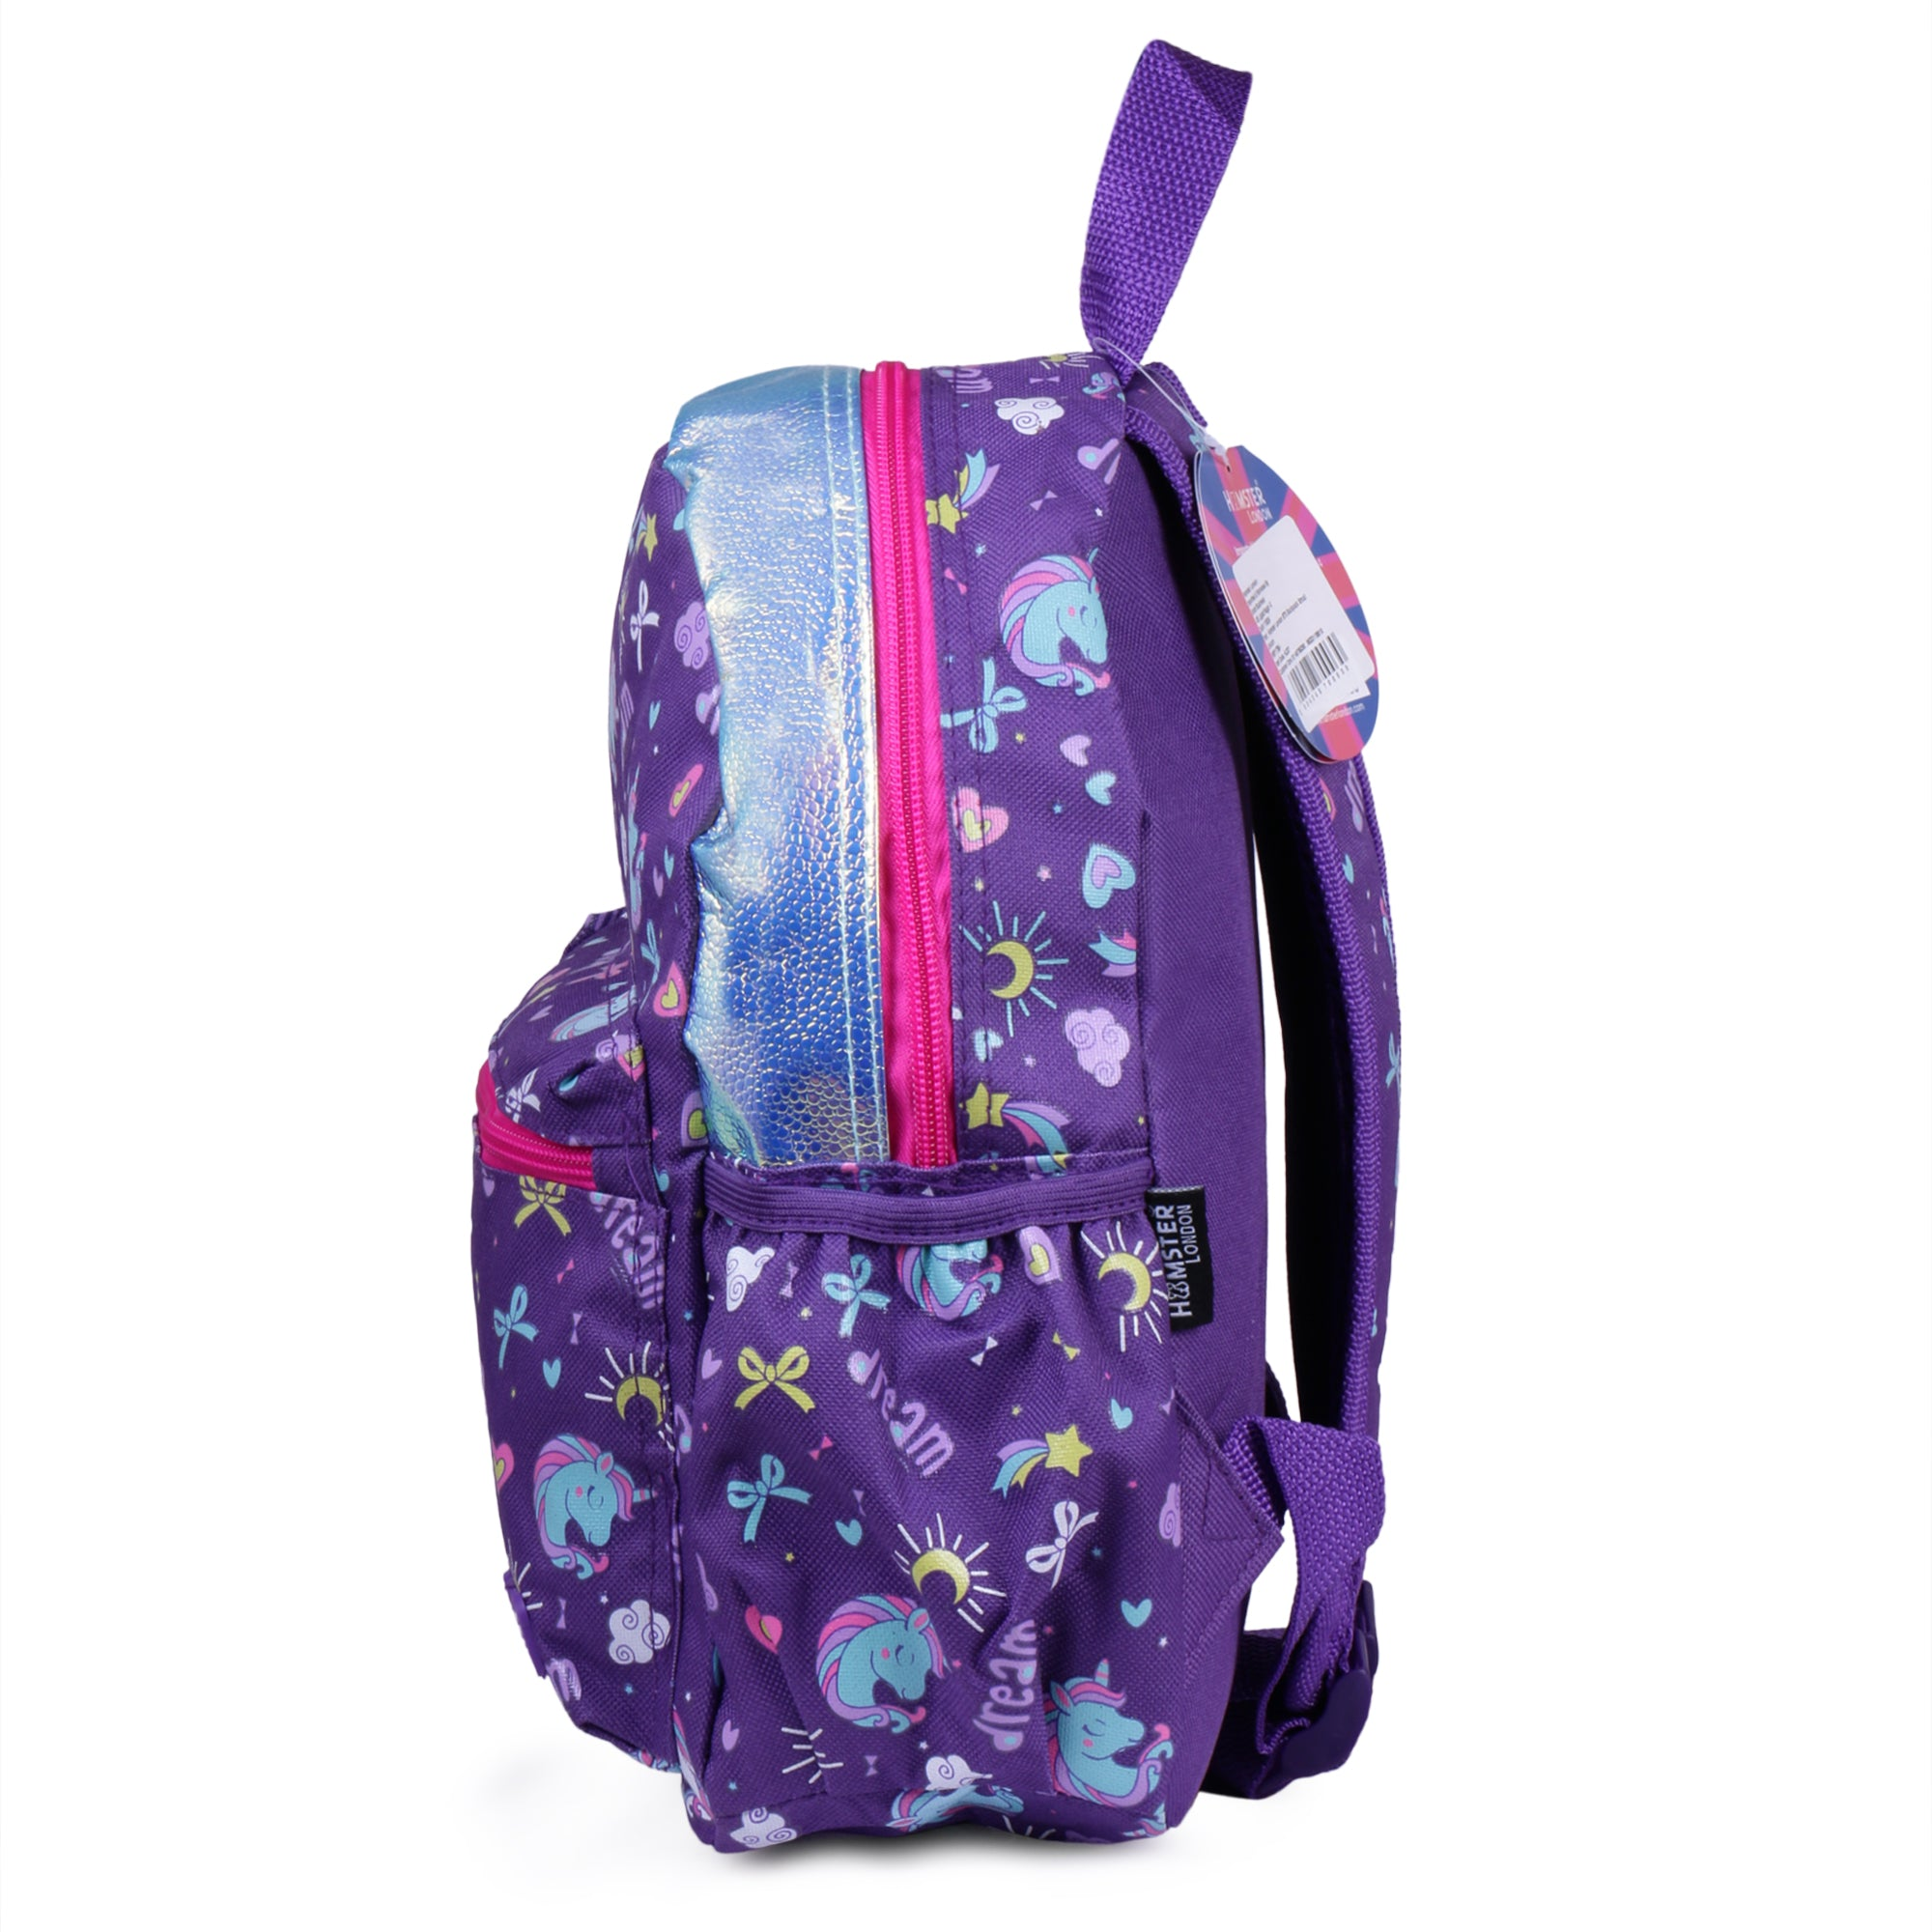 Small Unicorn Backpack For Kids